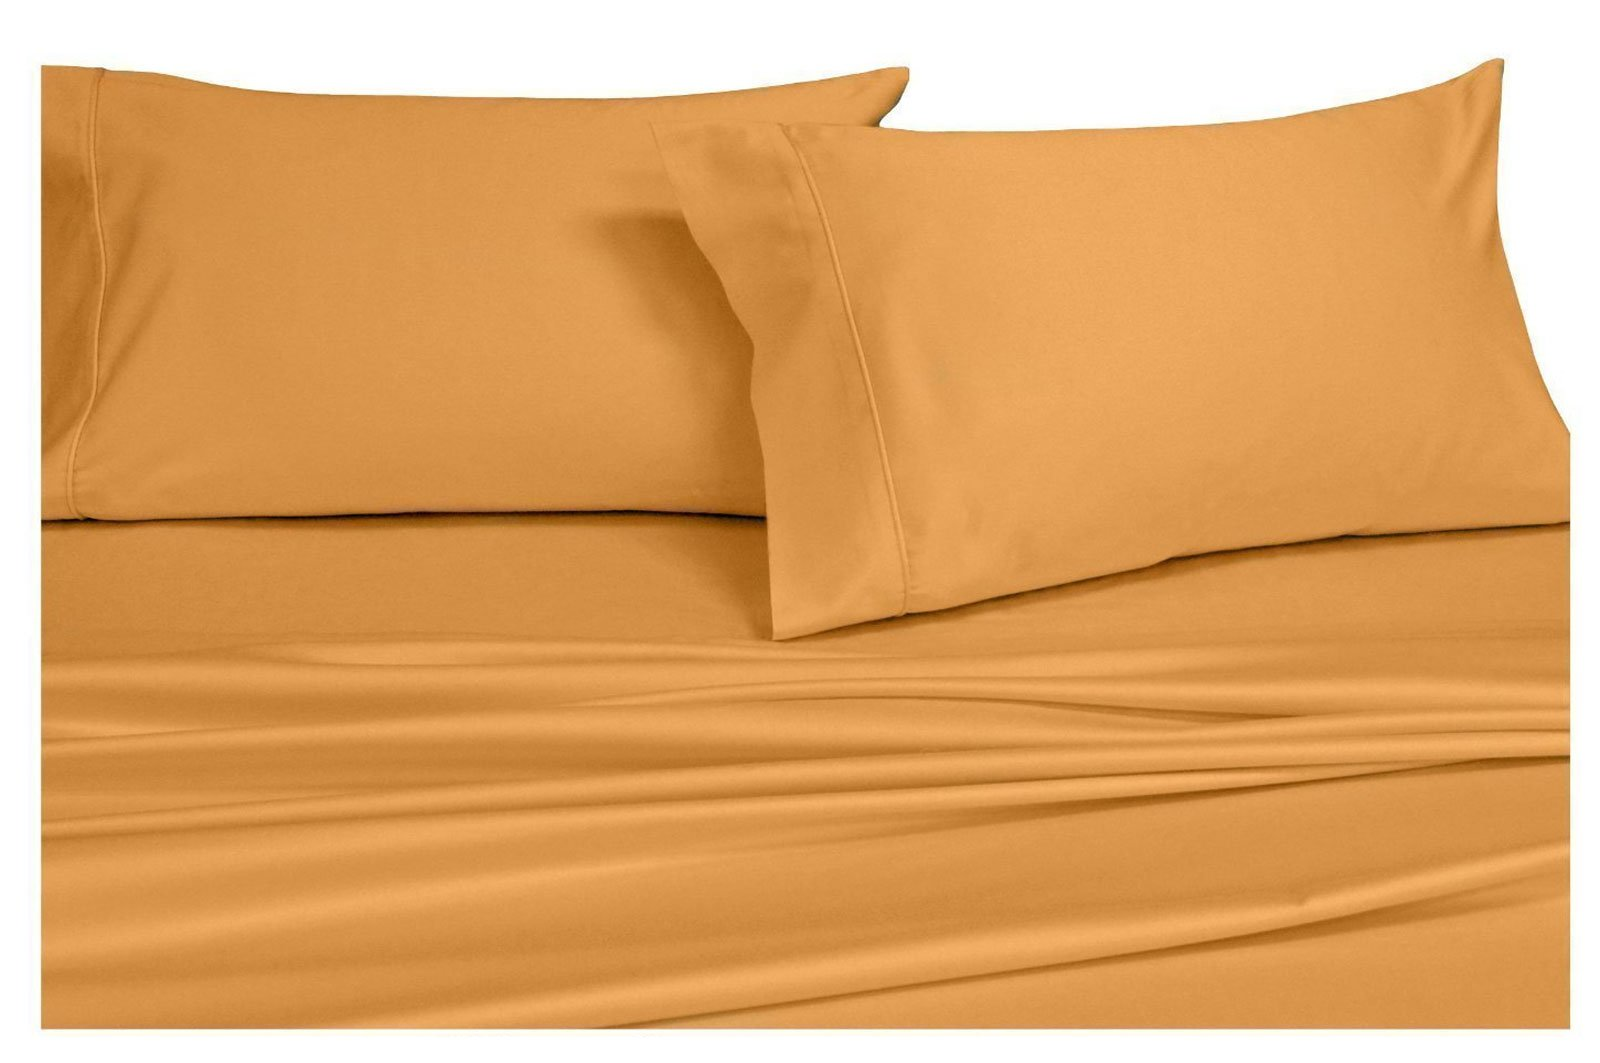 Royal Hotel Collection Ultra-Soft Sheets, Silky Soft 100% Microfiber Bed Sheets set, Deep Pocket, Wrinkle and Fade resistant, Hypoallergenic (Full Gold)